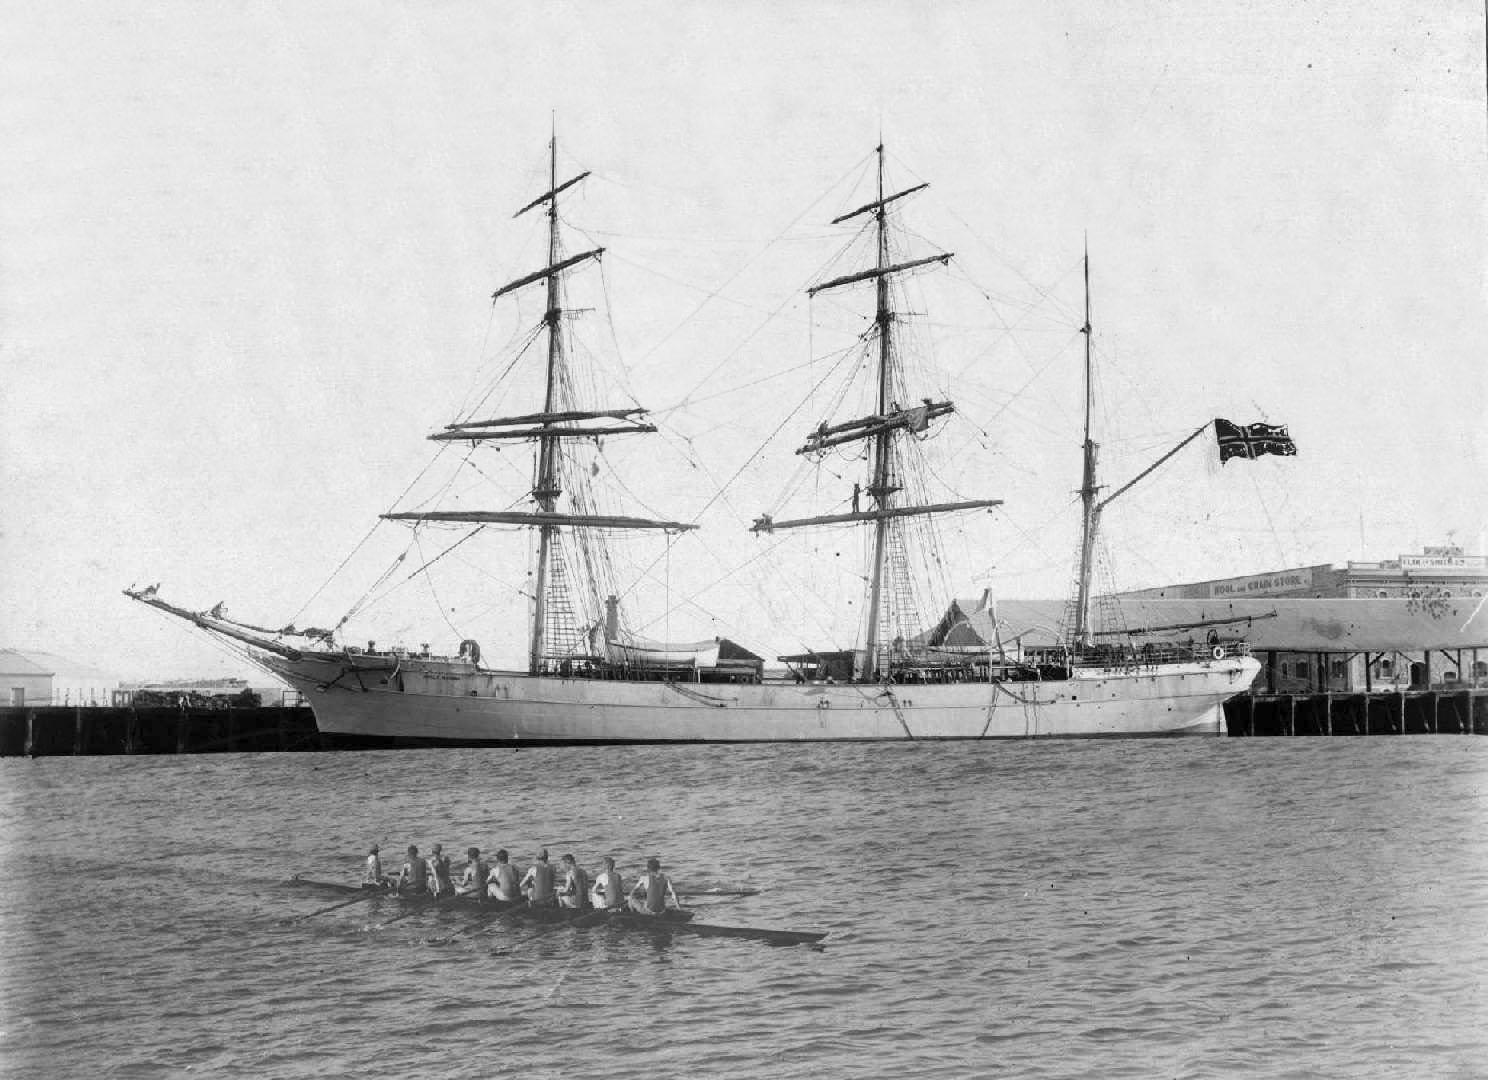 Barque built in 1876.